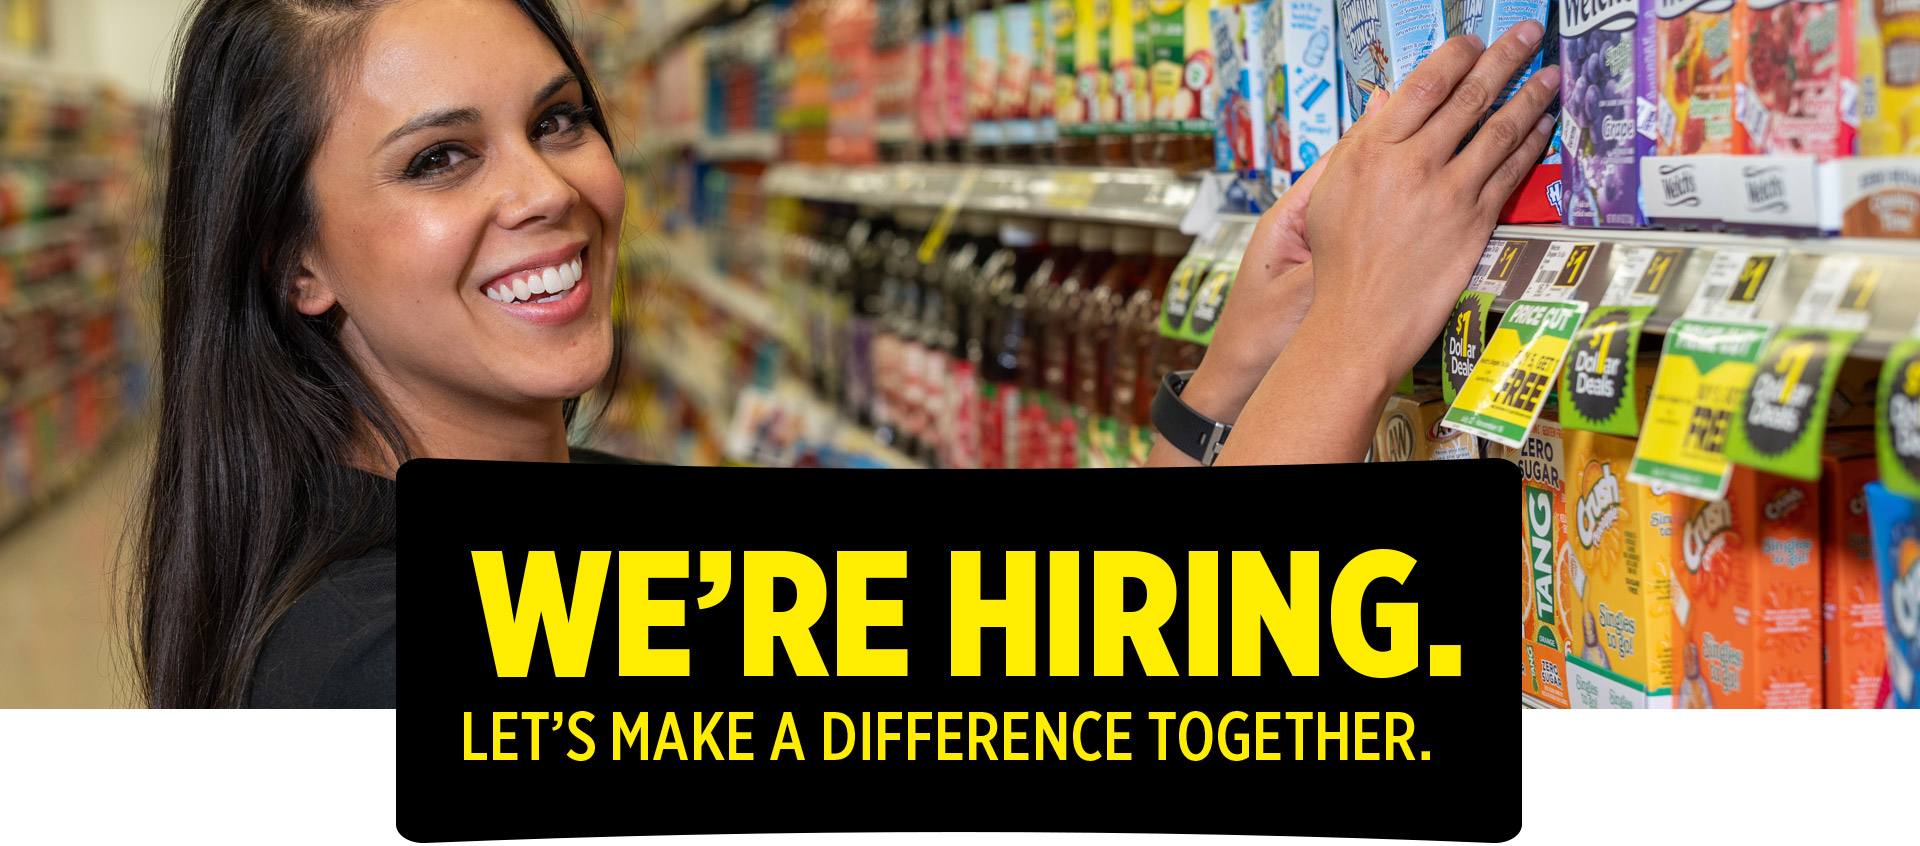 We're hiring. Let's make a difference together.